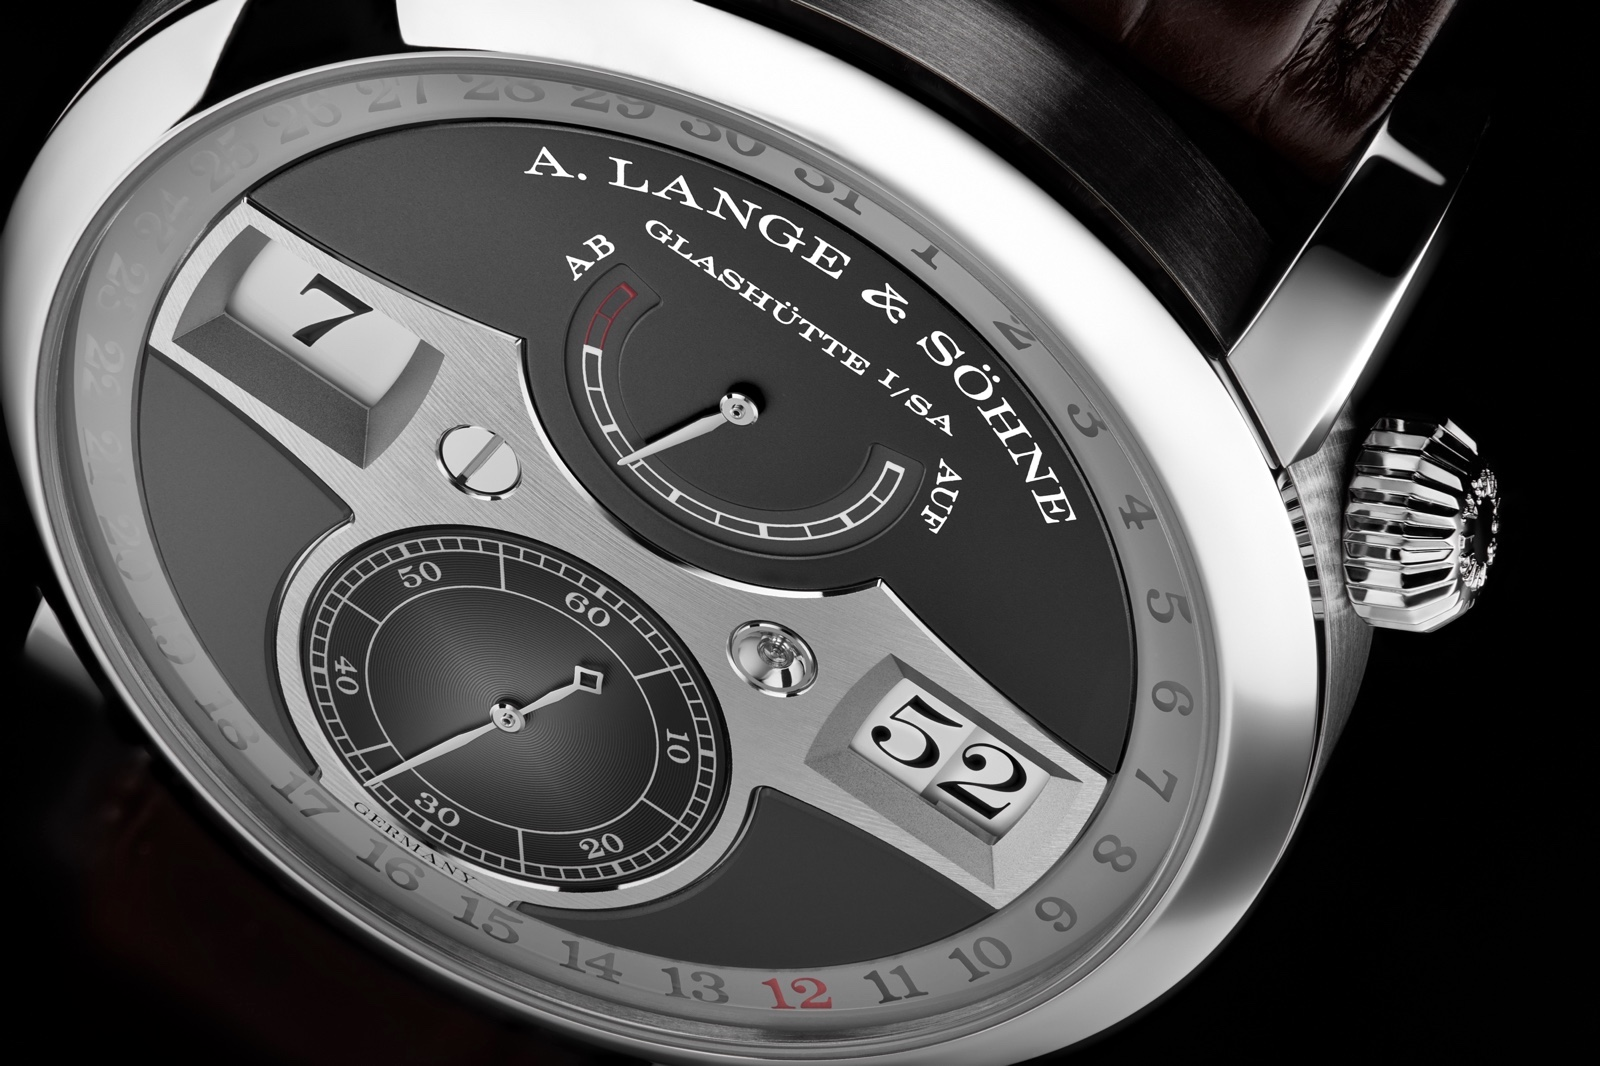 Lange Collection SIHH 2019 Zeitwerk Date